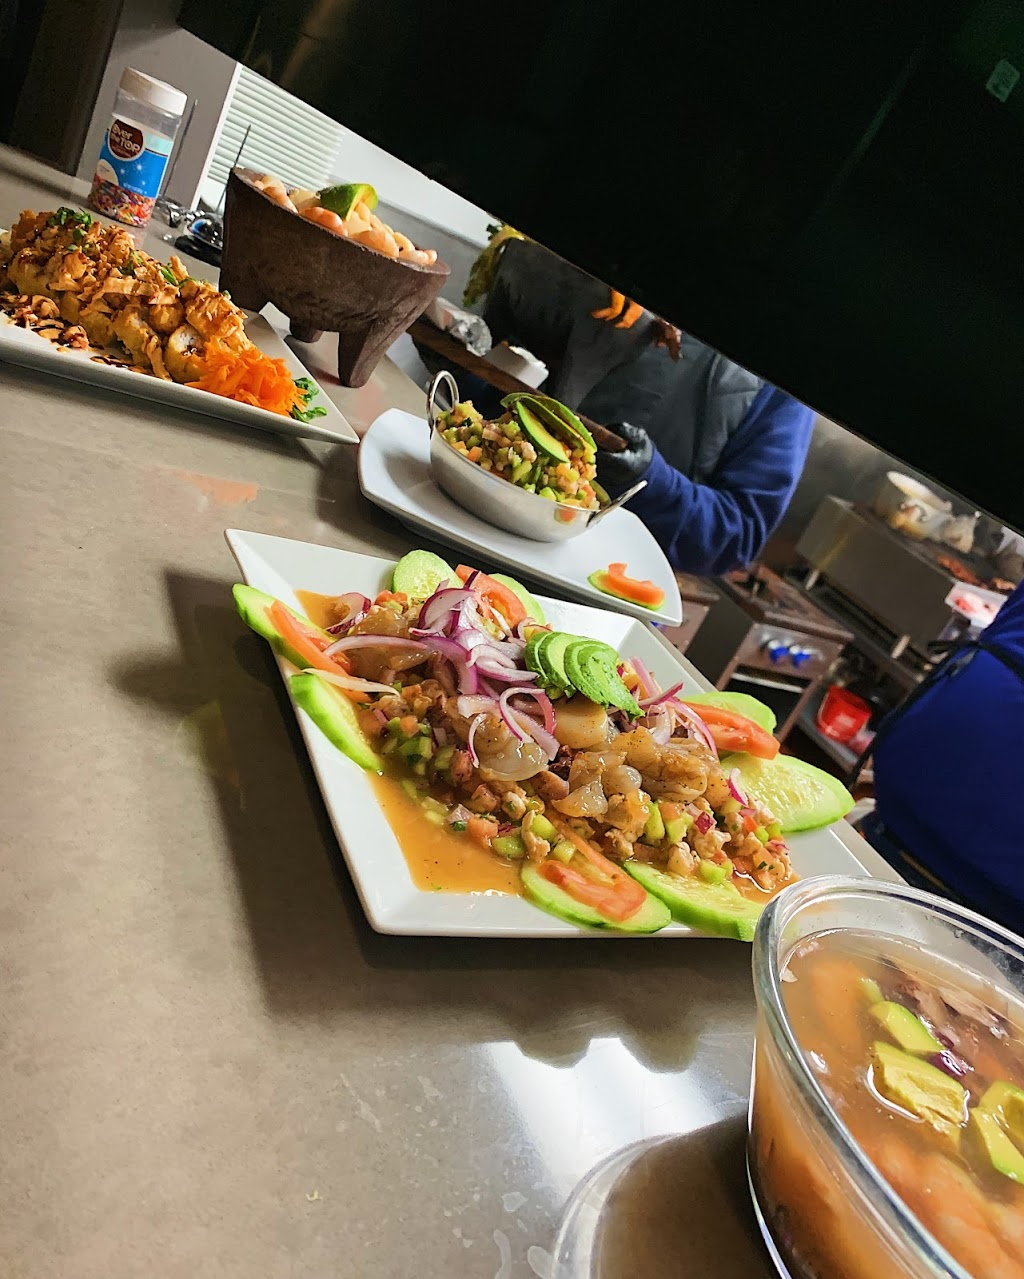 Mariscos 701 - restaurant  | Photo 10 of 10 | Address: 1648-C, Indian Hill Blvd, Pomona, CA 91767, USA | Phone: (909) 399-9393